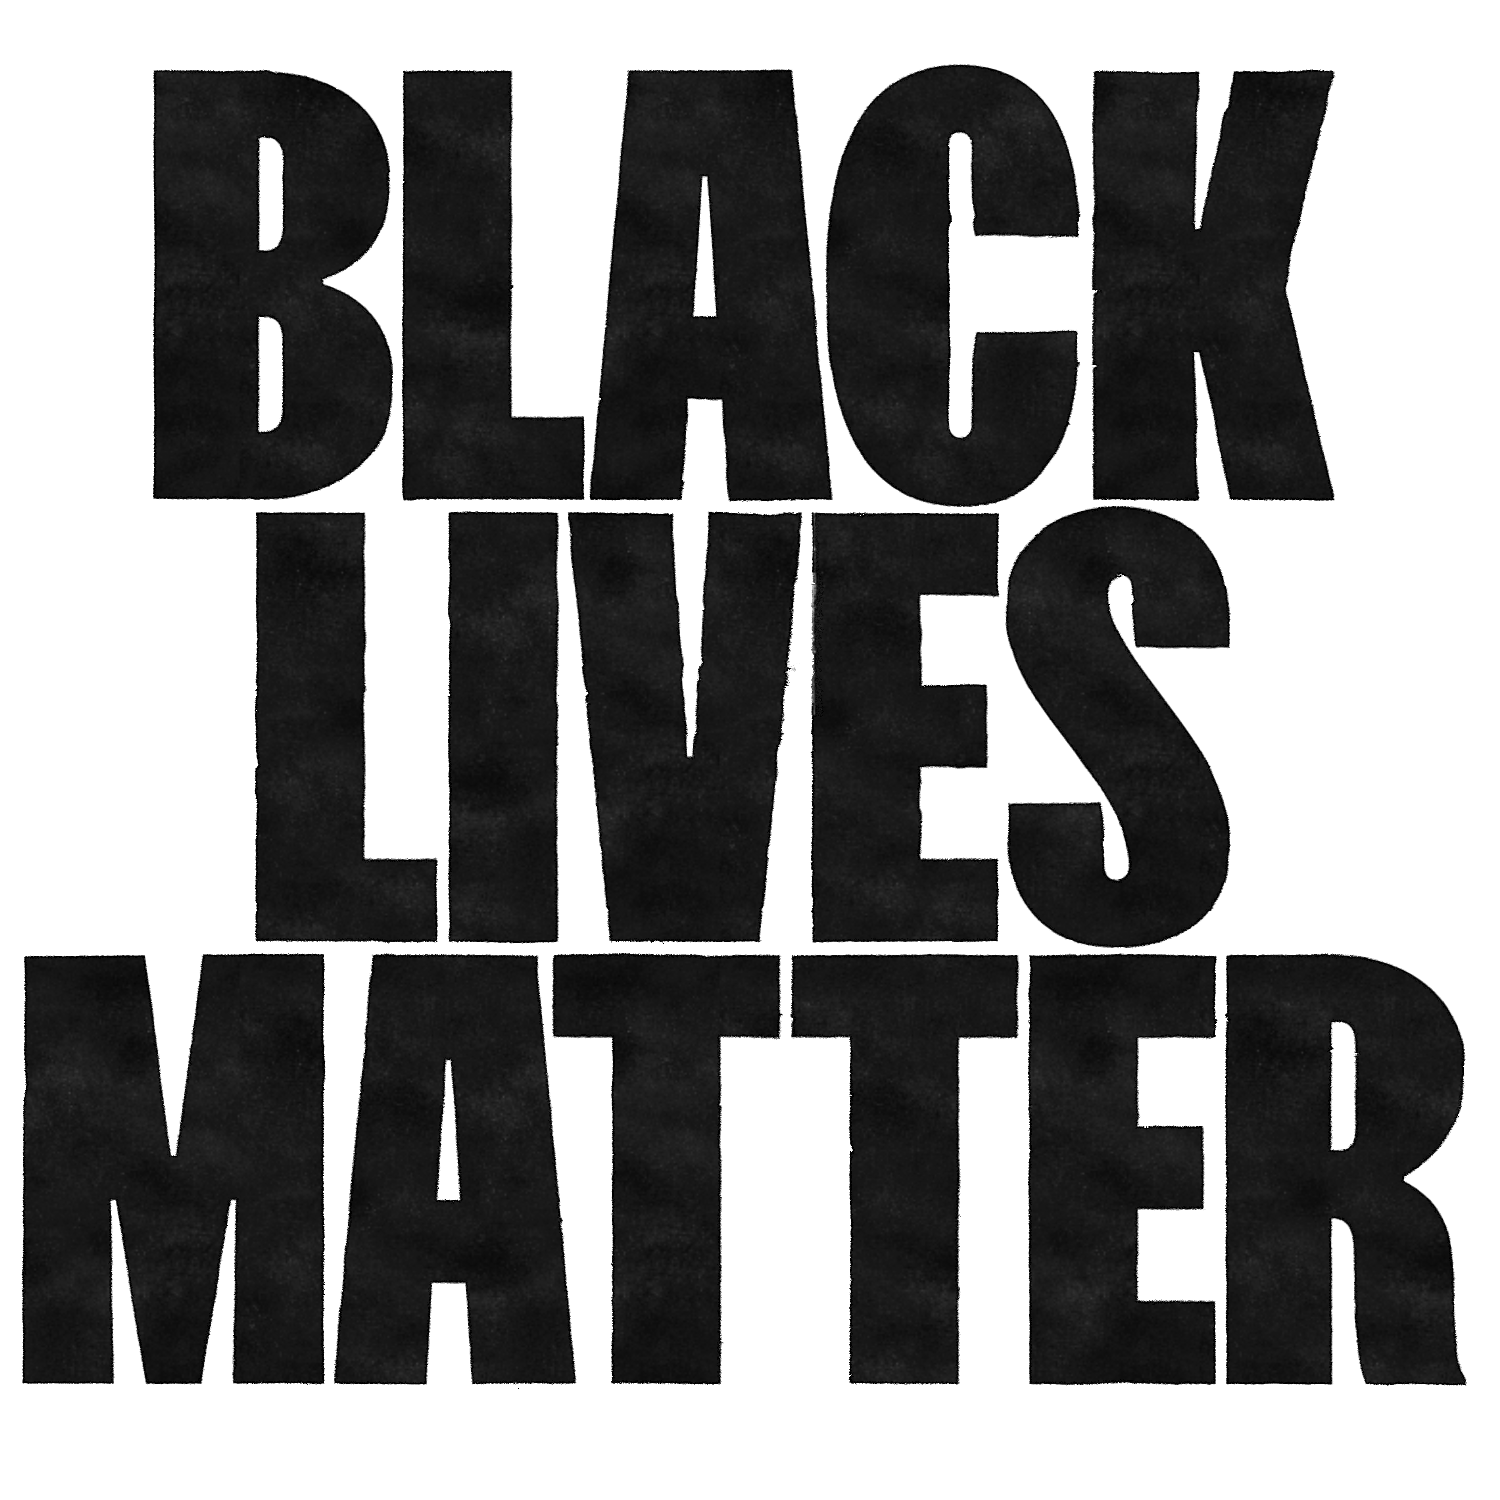 Black lives matter.  Our journey towards meaningful change.